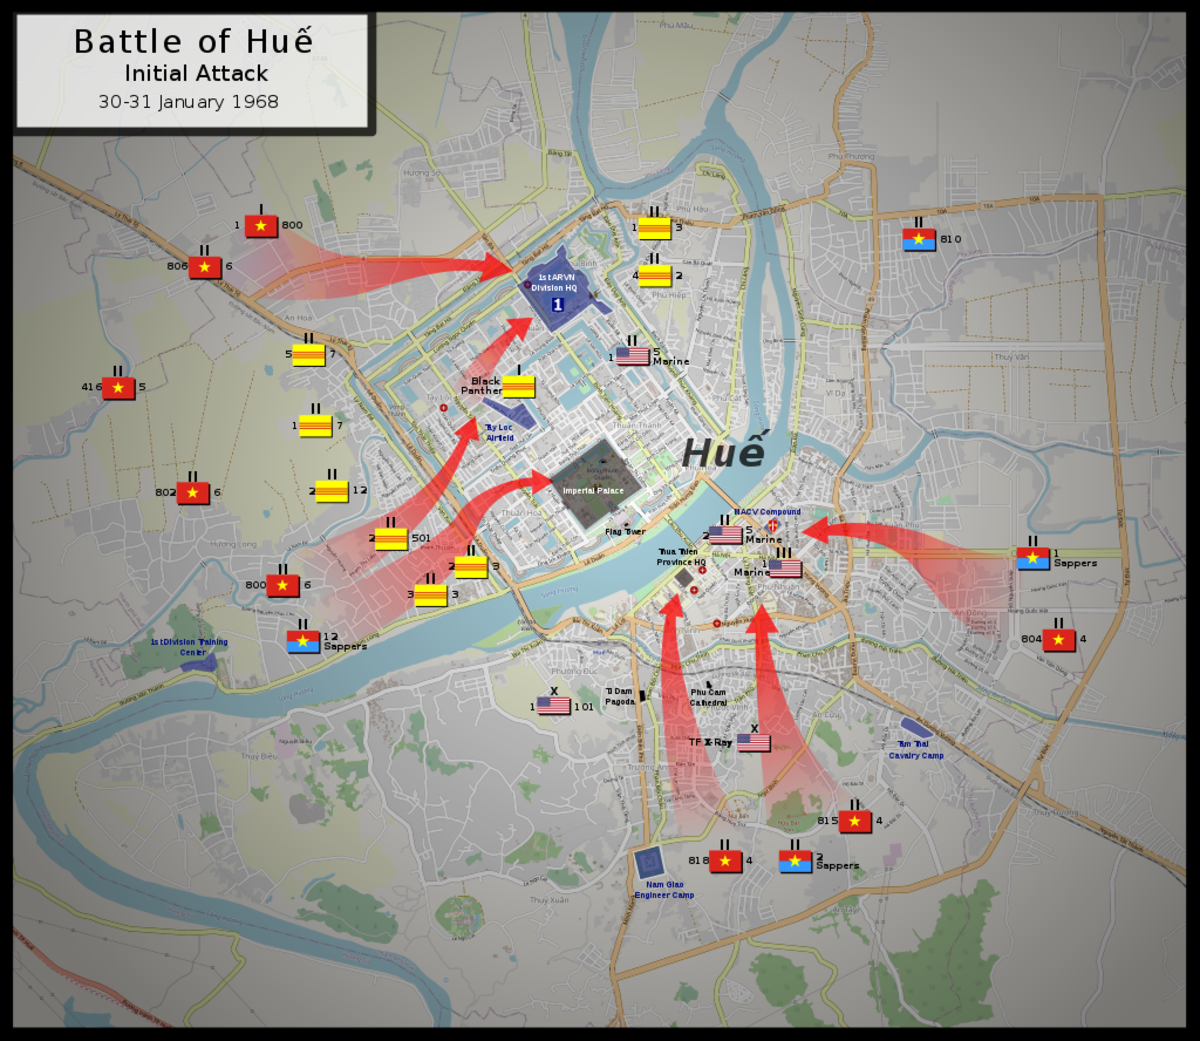 Over 8,000 North Vietnamese troops easily take control of Hue in the initial phase of the battle during the Tet Offensive.